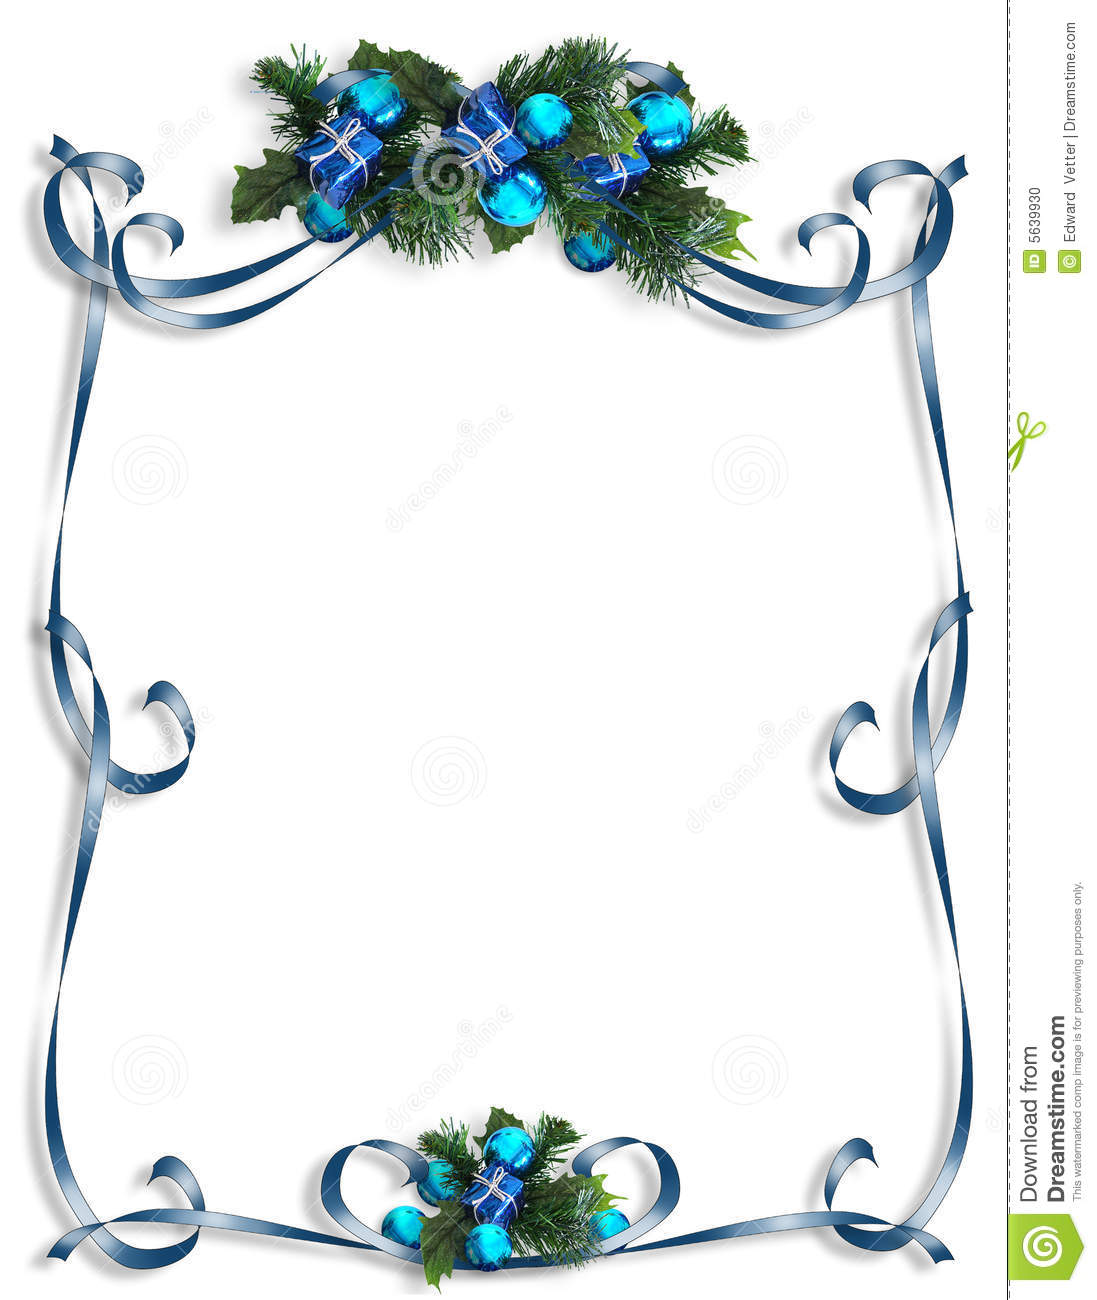 Christmas Hanukkah Background Border Or Frame Illustration 5639930